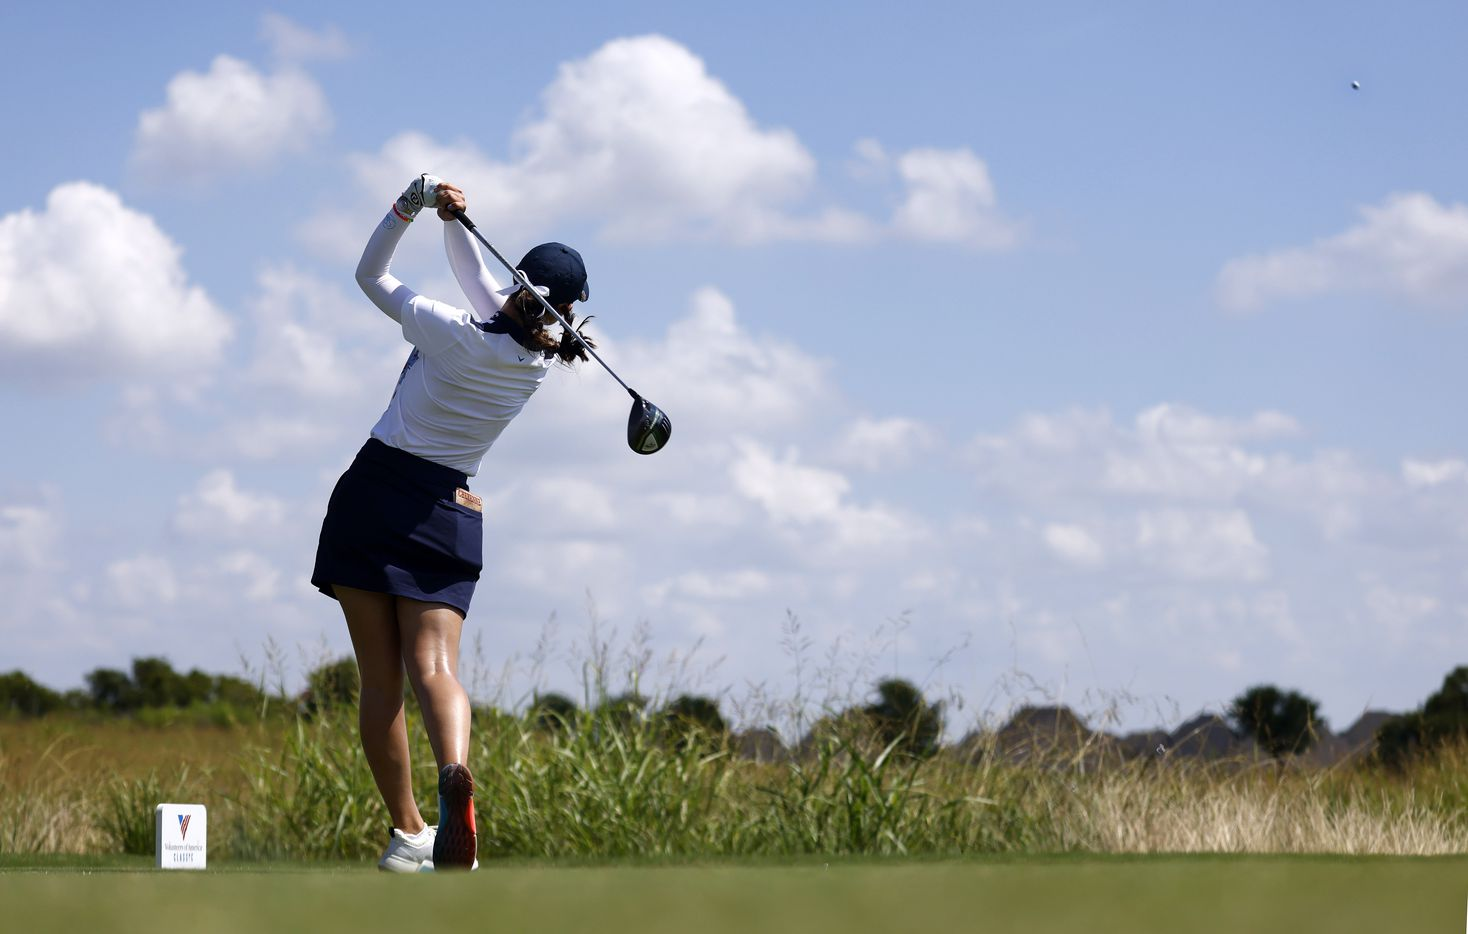 Professional golfer Cheyenne Knight of Aledo follows through on her drive on No. 1 during the opening round of the LPGA VOA Classic at the Old American Golf Club in The Colony, Texas, Thursday, July 1, 2021. (Tom Fox/The Dallas Morning News)